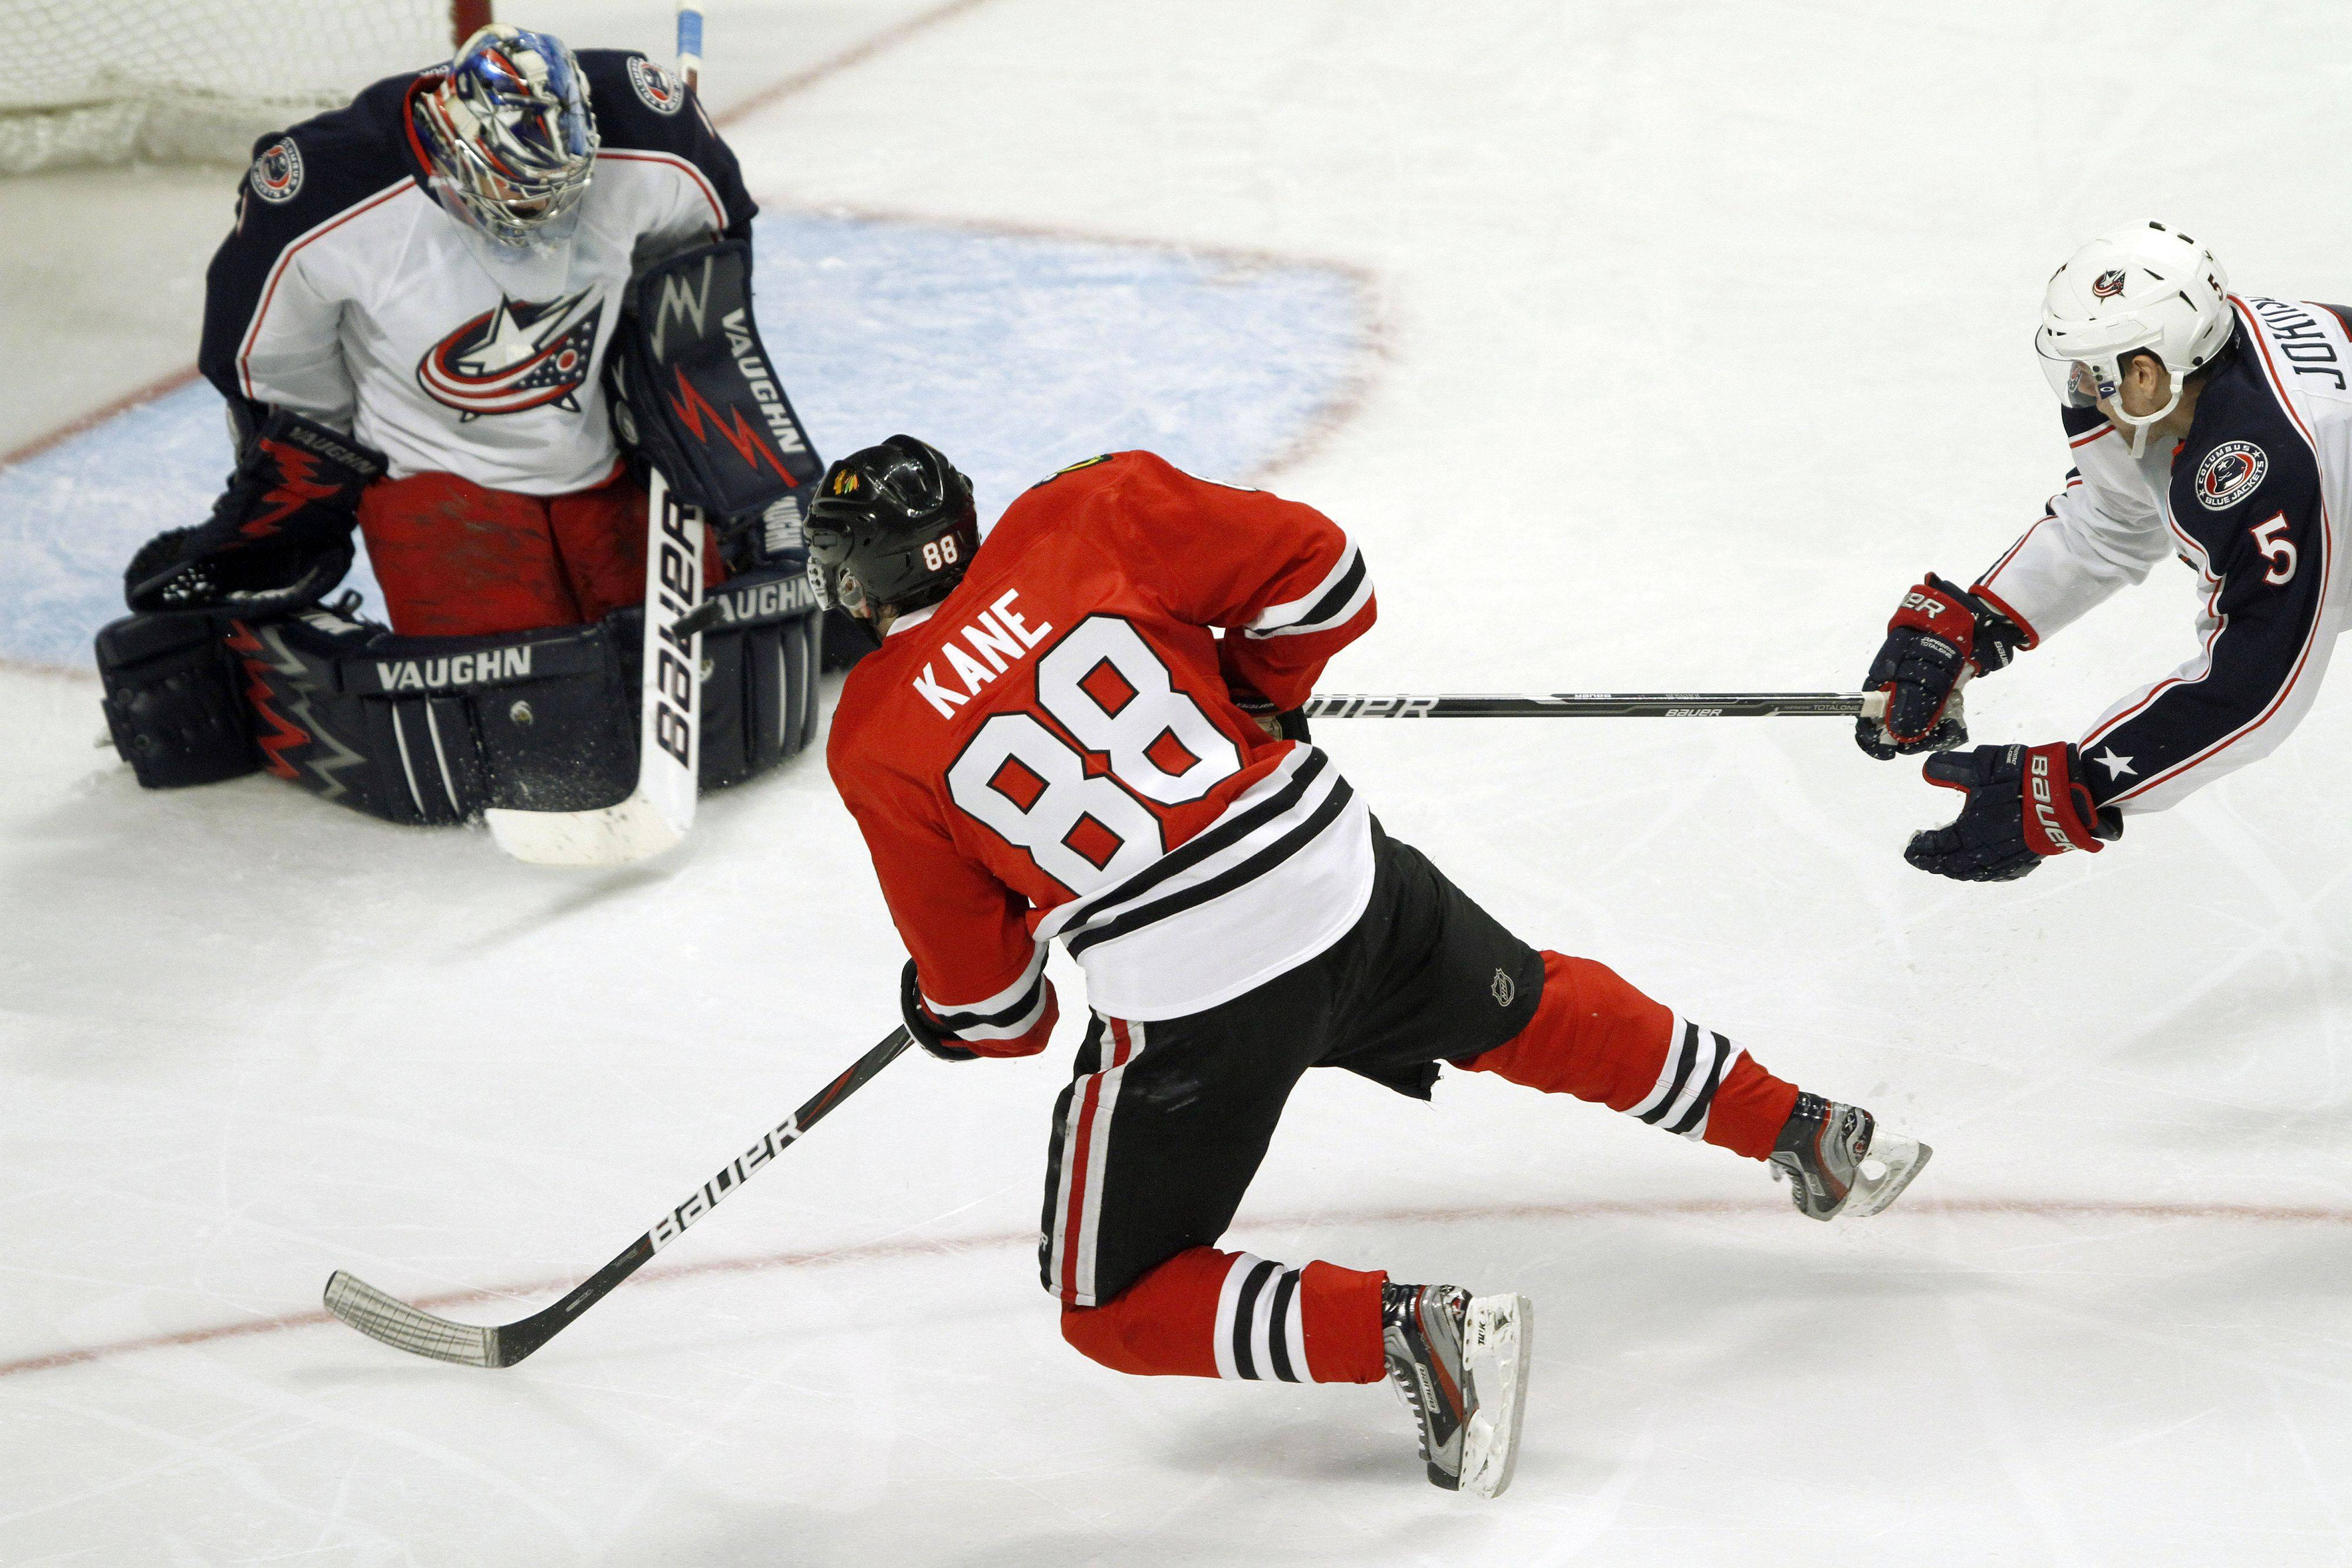 Chicago Blackhawks right wing Patrick Kane takes a diving shot on Columbus Blue Jackets goalie Steve Mason in the third period during their game Monday night at the United Center in Chicago.